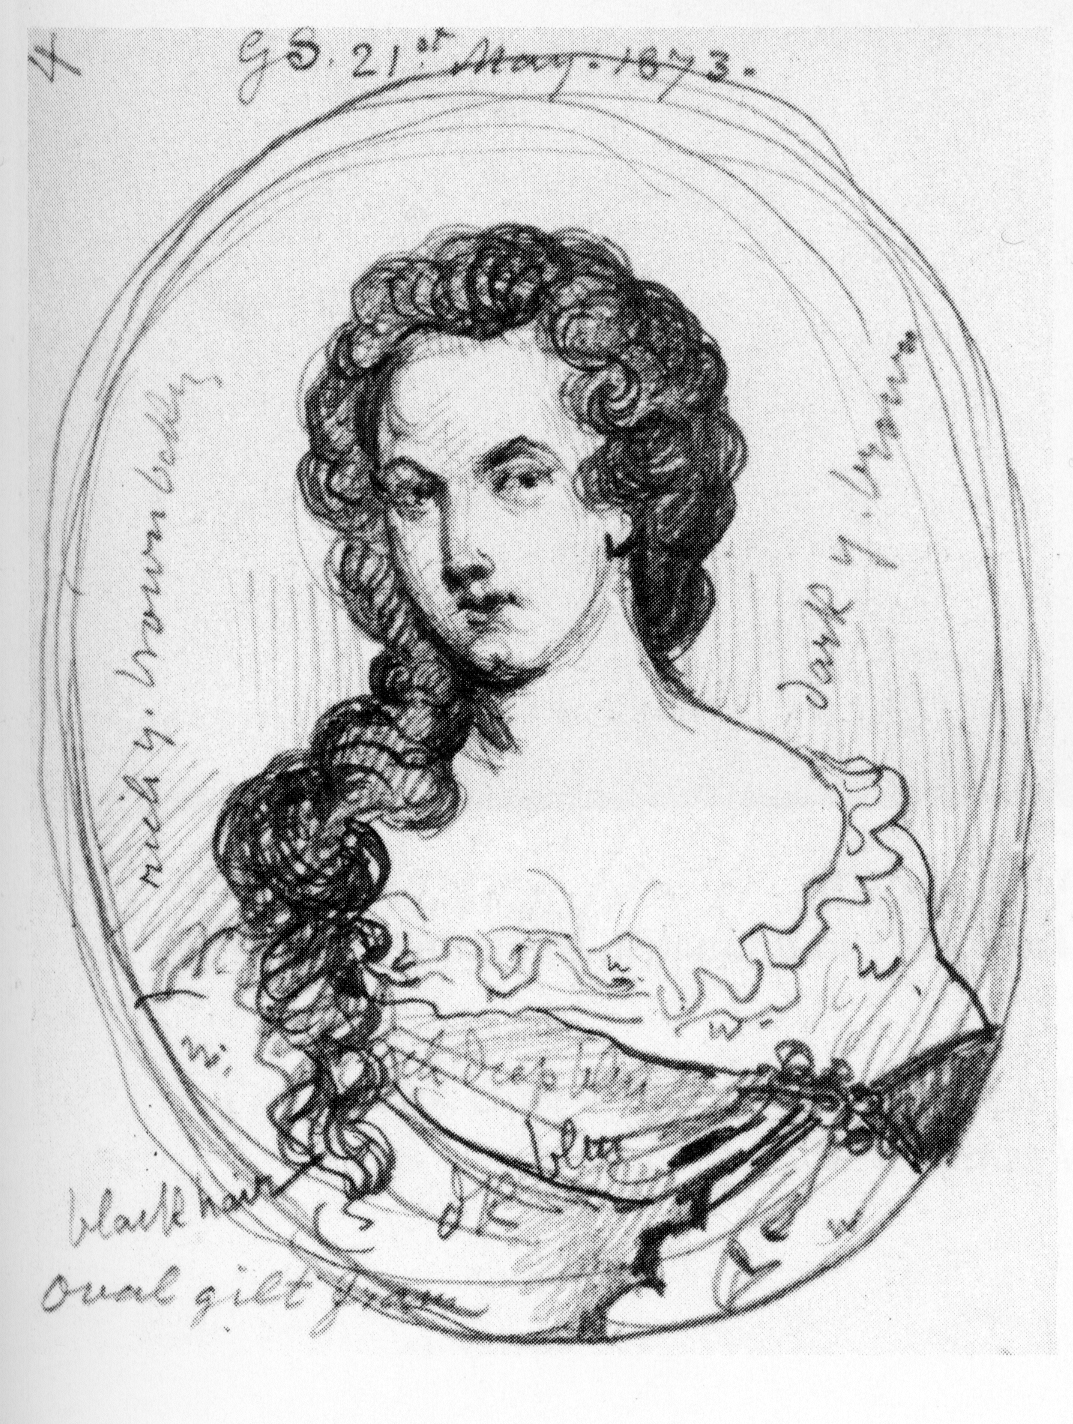 Aphra Behn Sketch, from Wikipedia